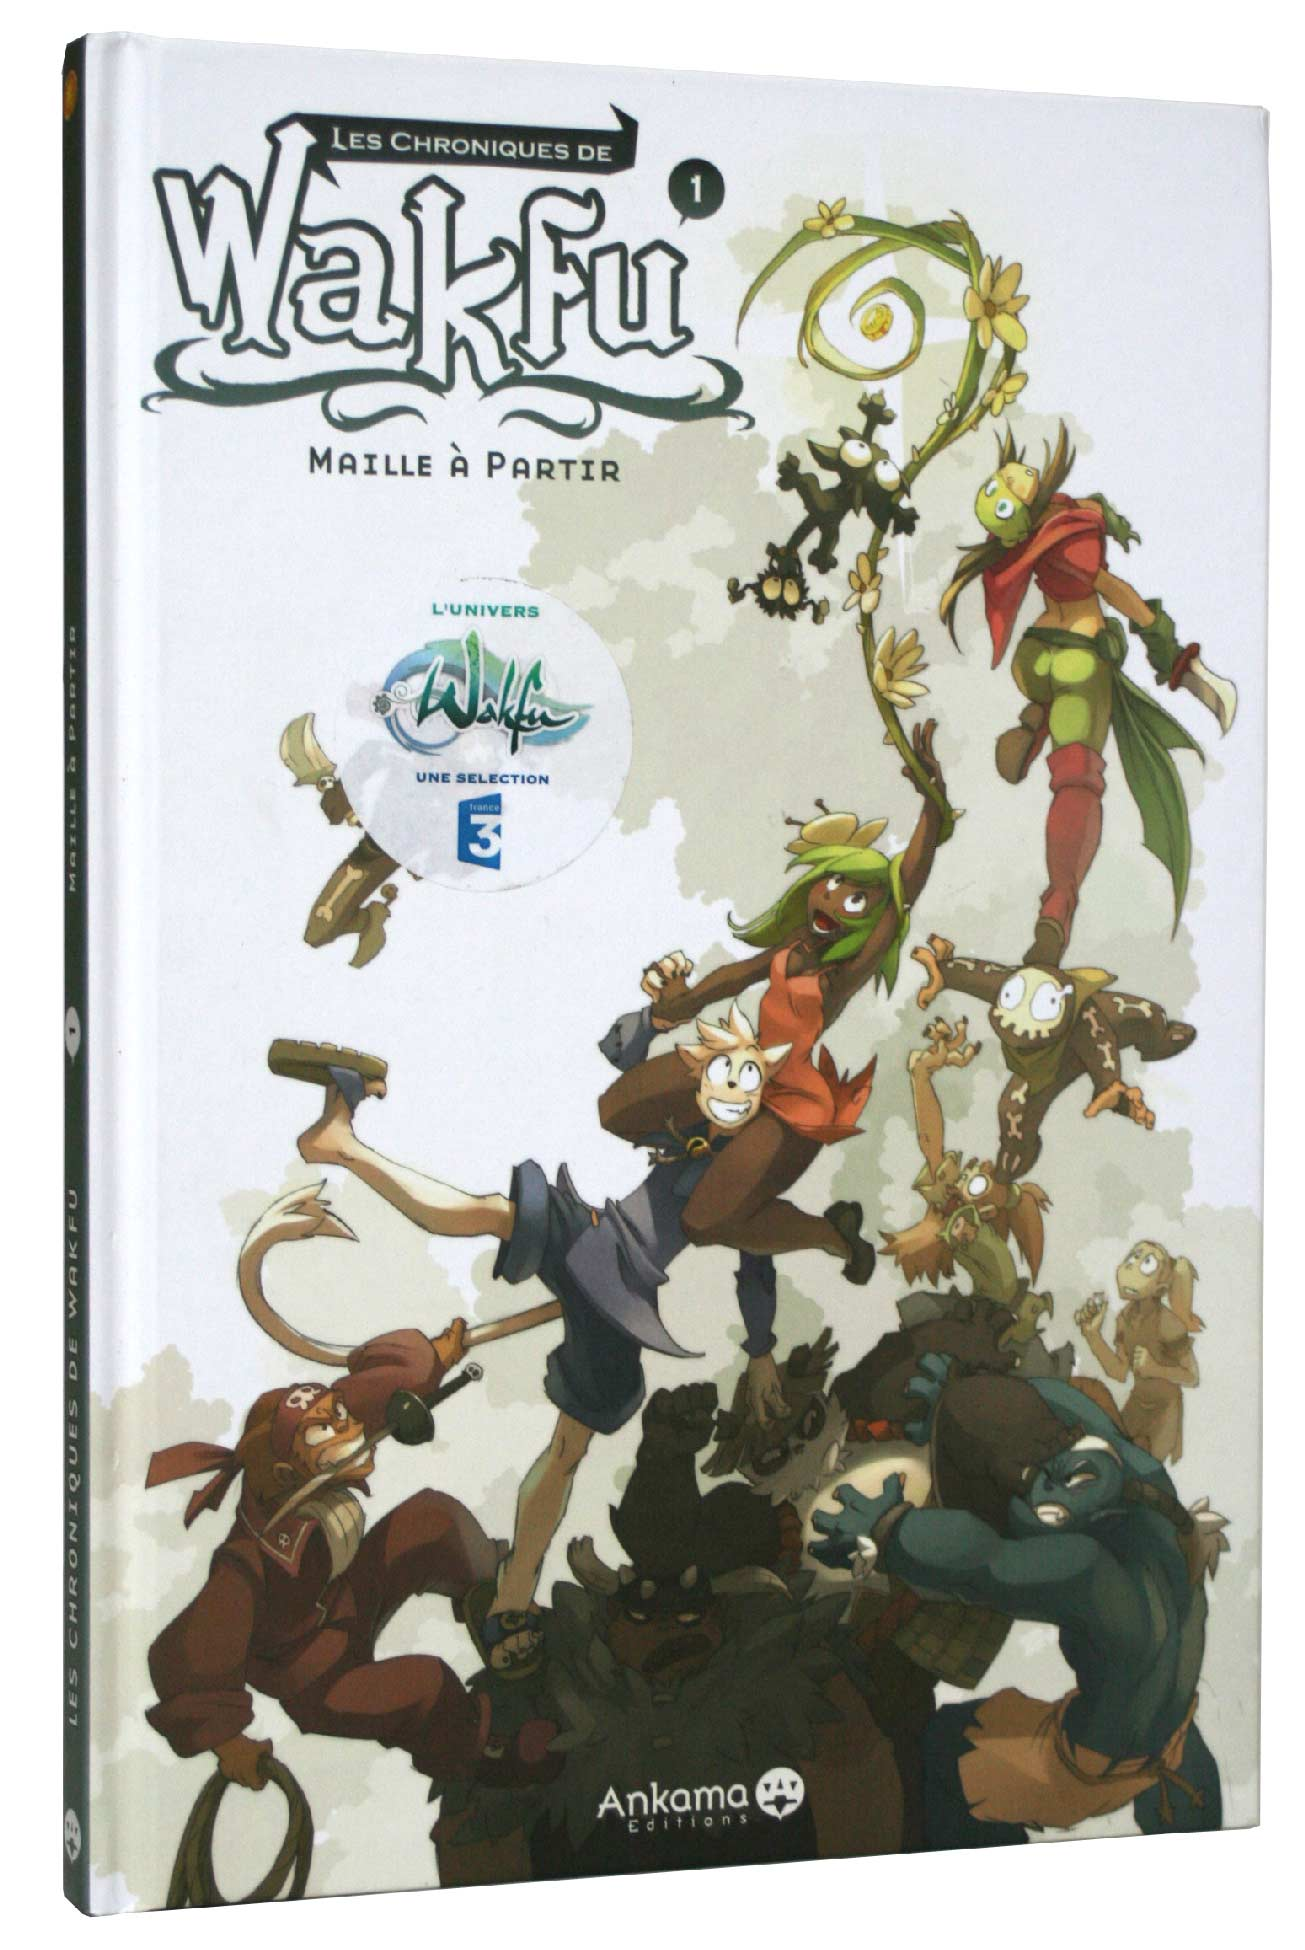 Tome 1 des Chroniques de Wakfu : Maille  partir